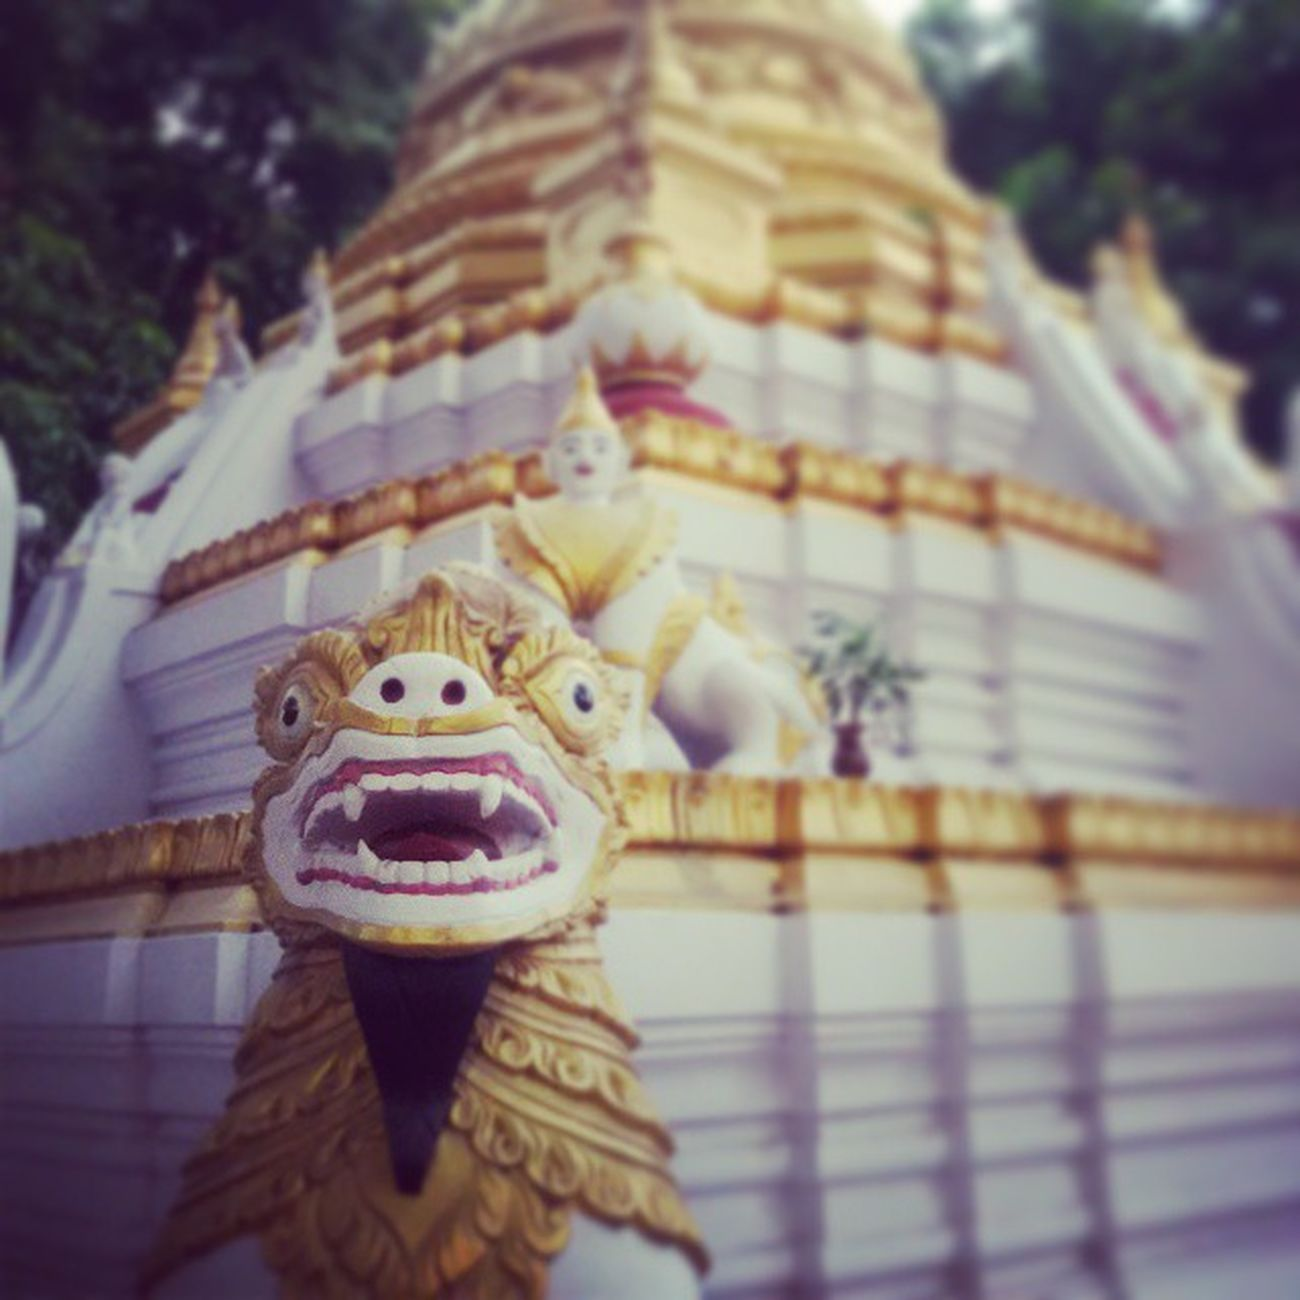 The lion said 'Good morning'. Ingersmyanmar Myanmar Mandalay Pagoda Sculpture Statue Vscomyanmar Lion Temple